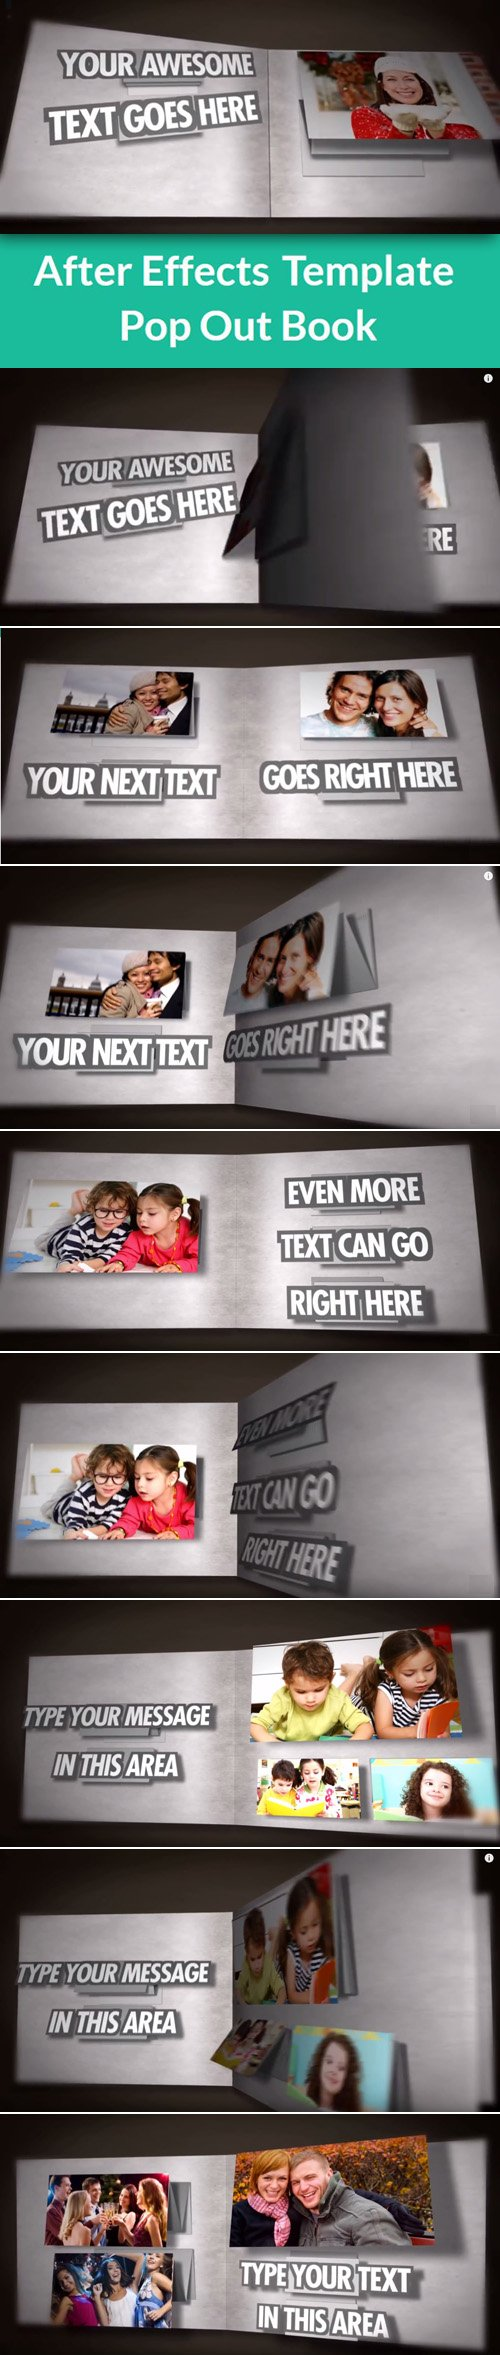 Pop out book after effects template aep nitrogfx for Aep templates free download